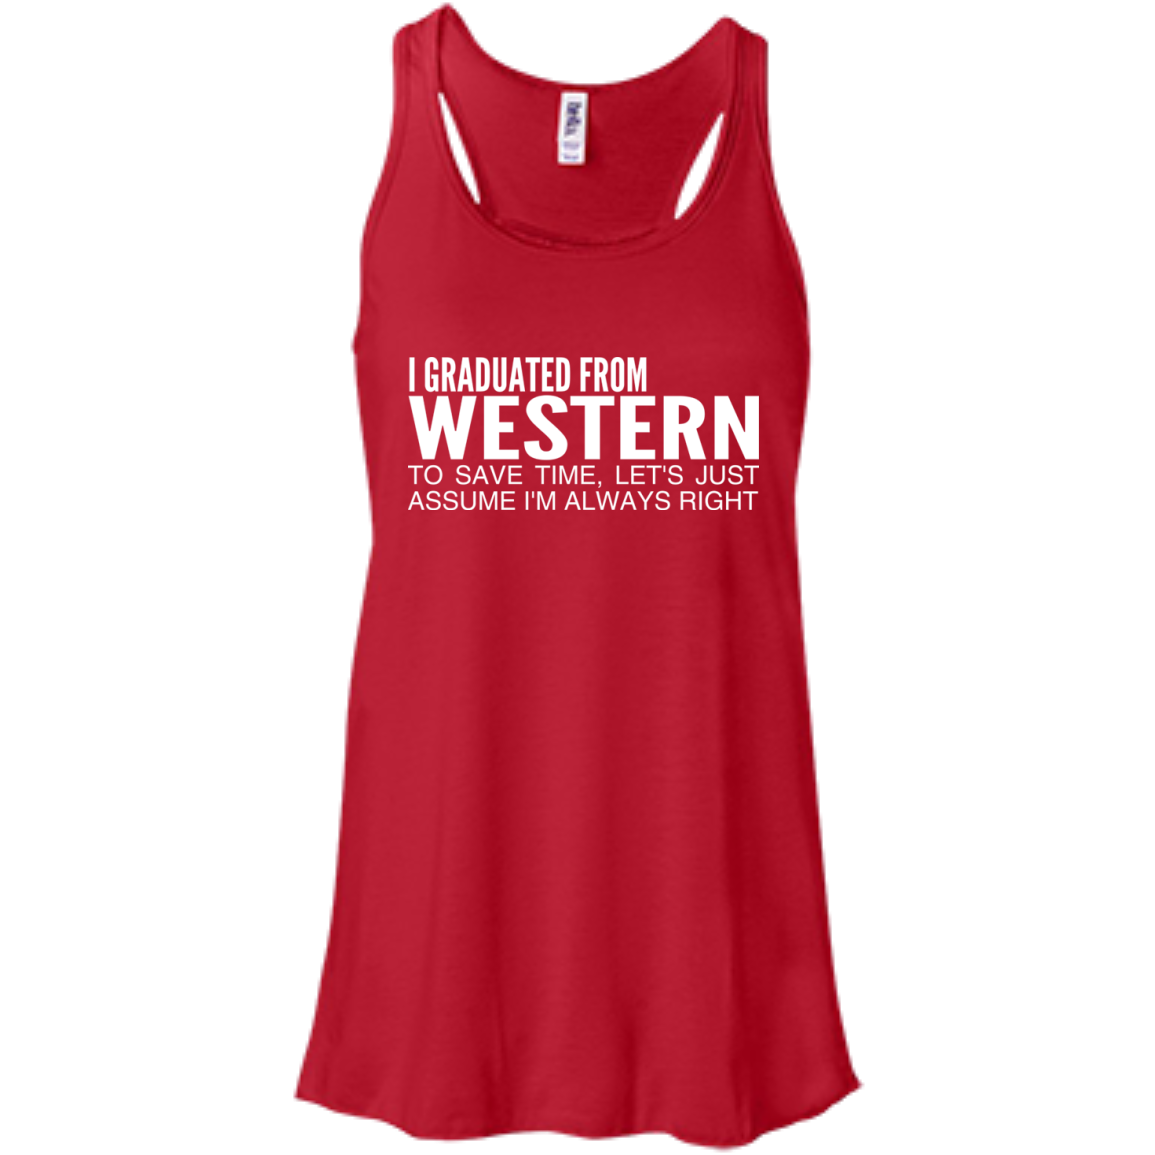 I Graduated From Western To Save Time Lets Just Assume Im Always Right Flowy Racerback Tanks